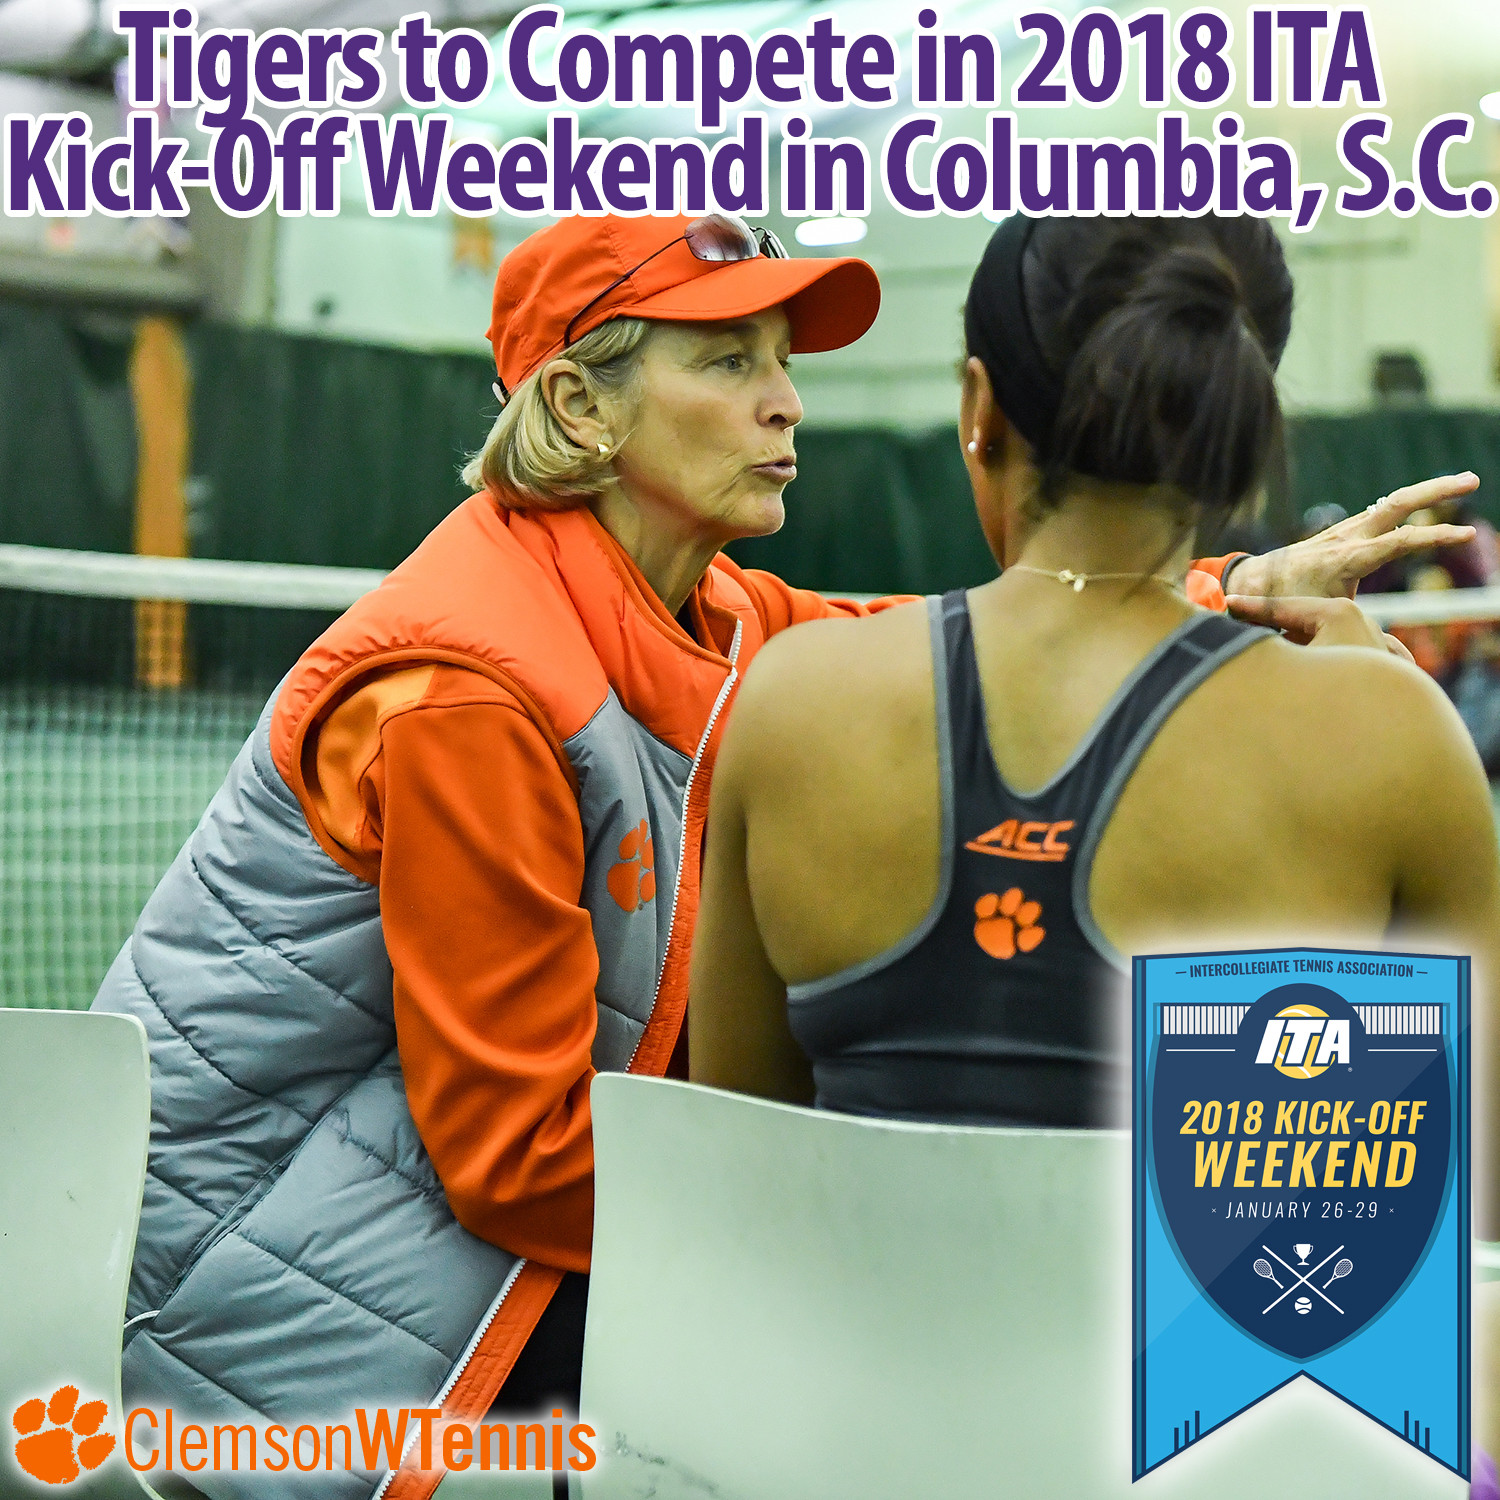 Clemson to Compete in 2018 ITA Kick-Off Weekend in Columbia, S.C.